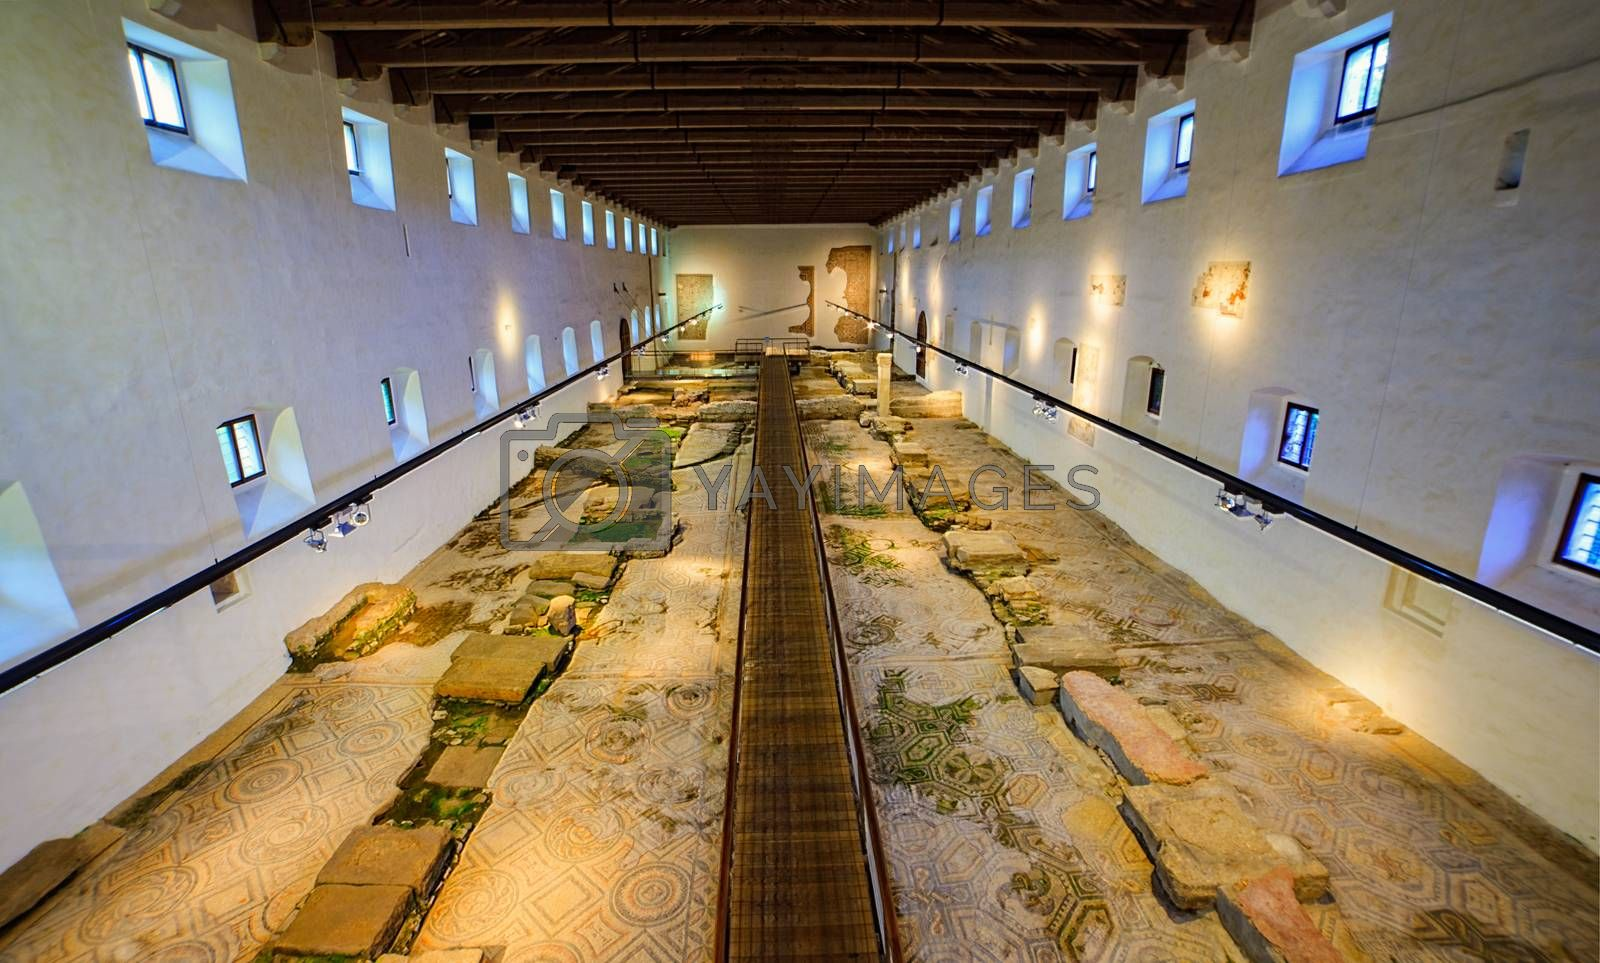 Aquileia National Archaeological Museum, Aquileia by bepsimage